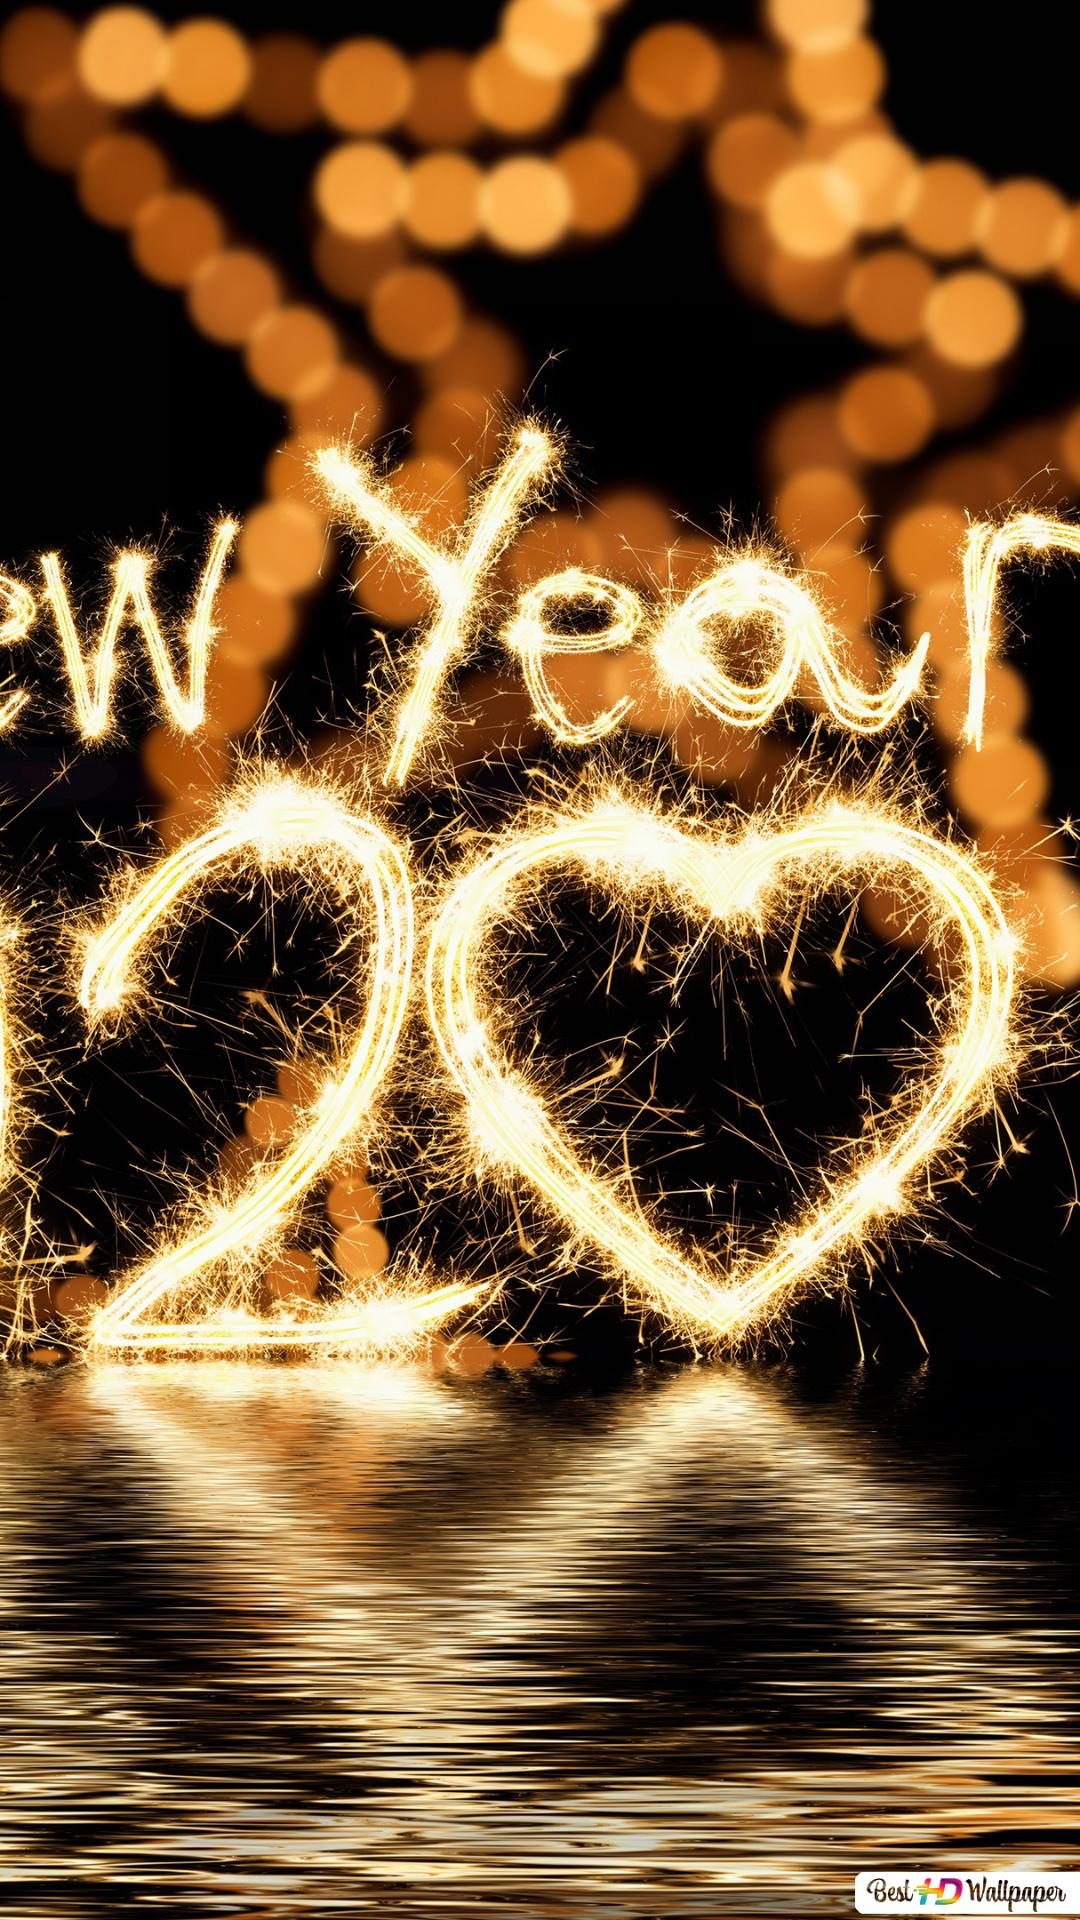 Glowing 2020 Happy New Year Water Reflection Hd Wallpaper Download